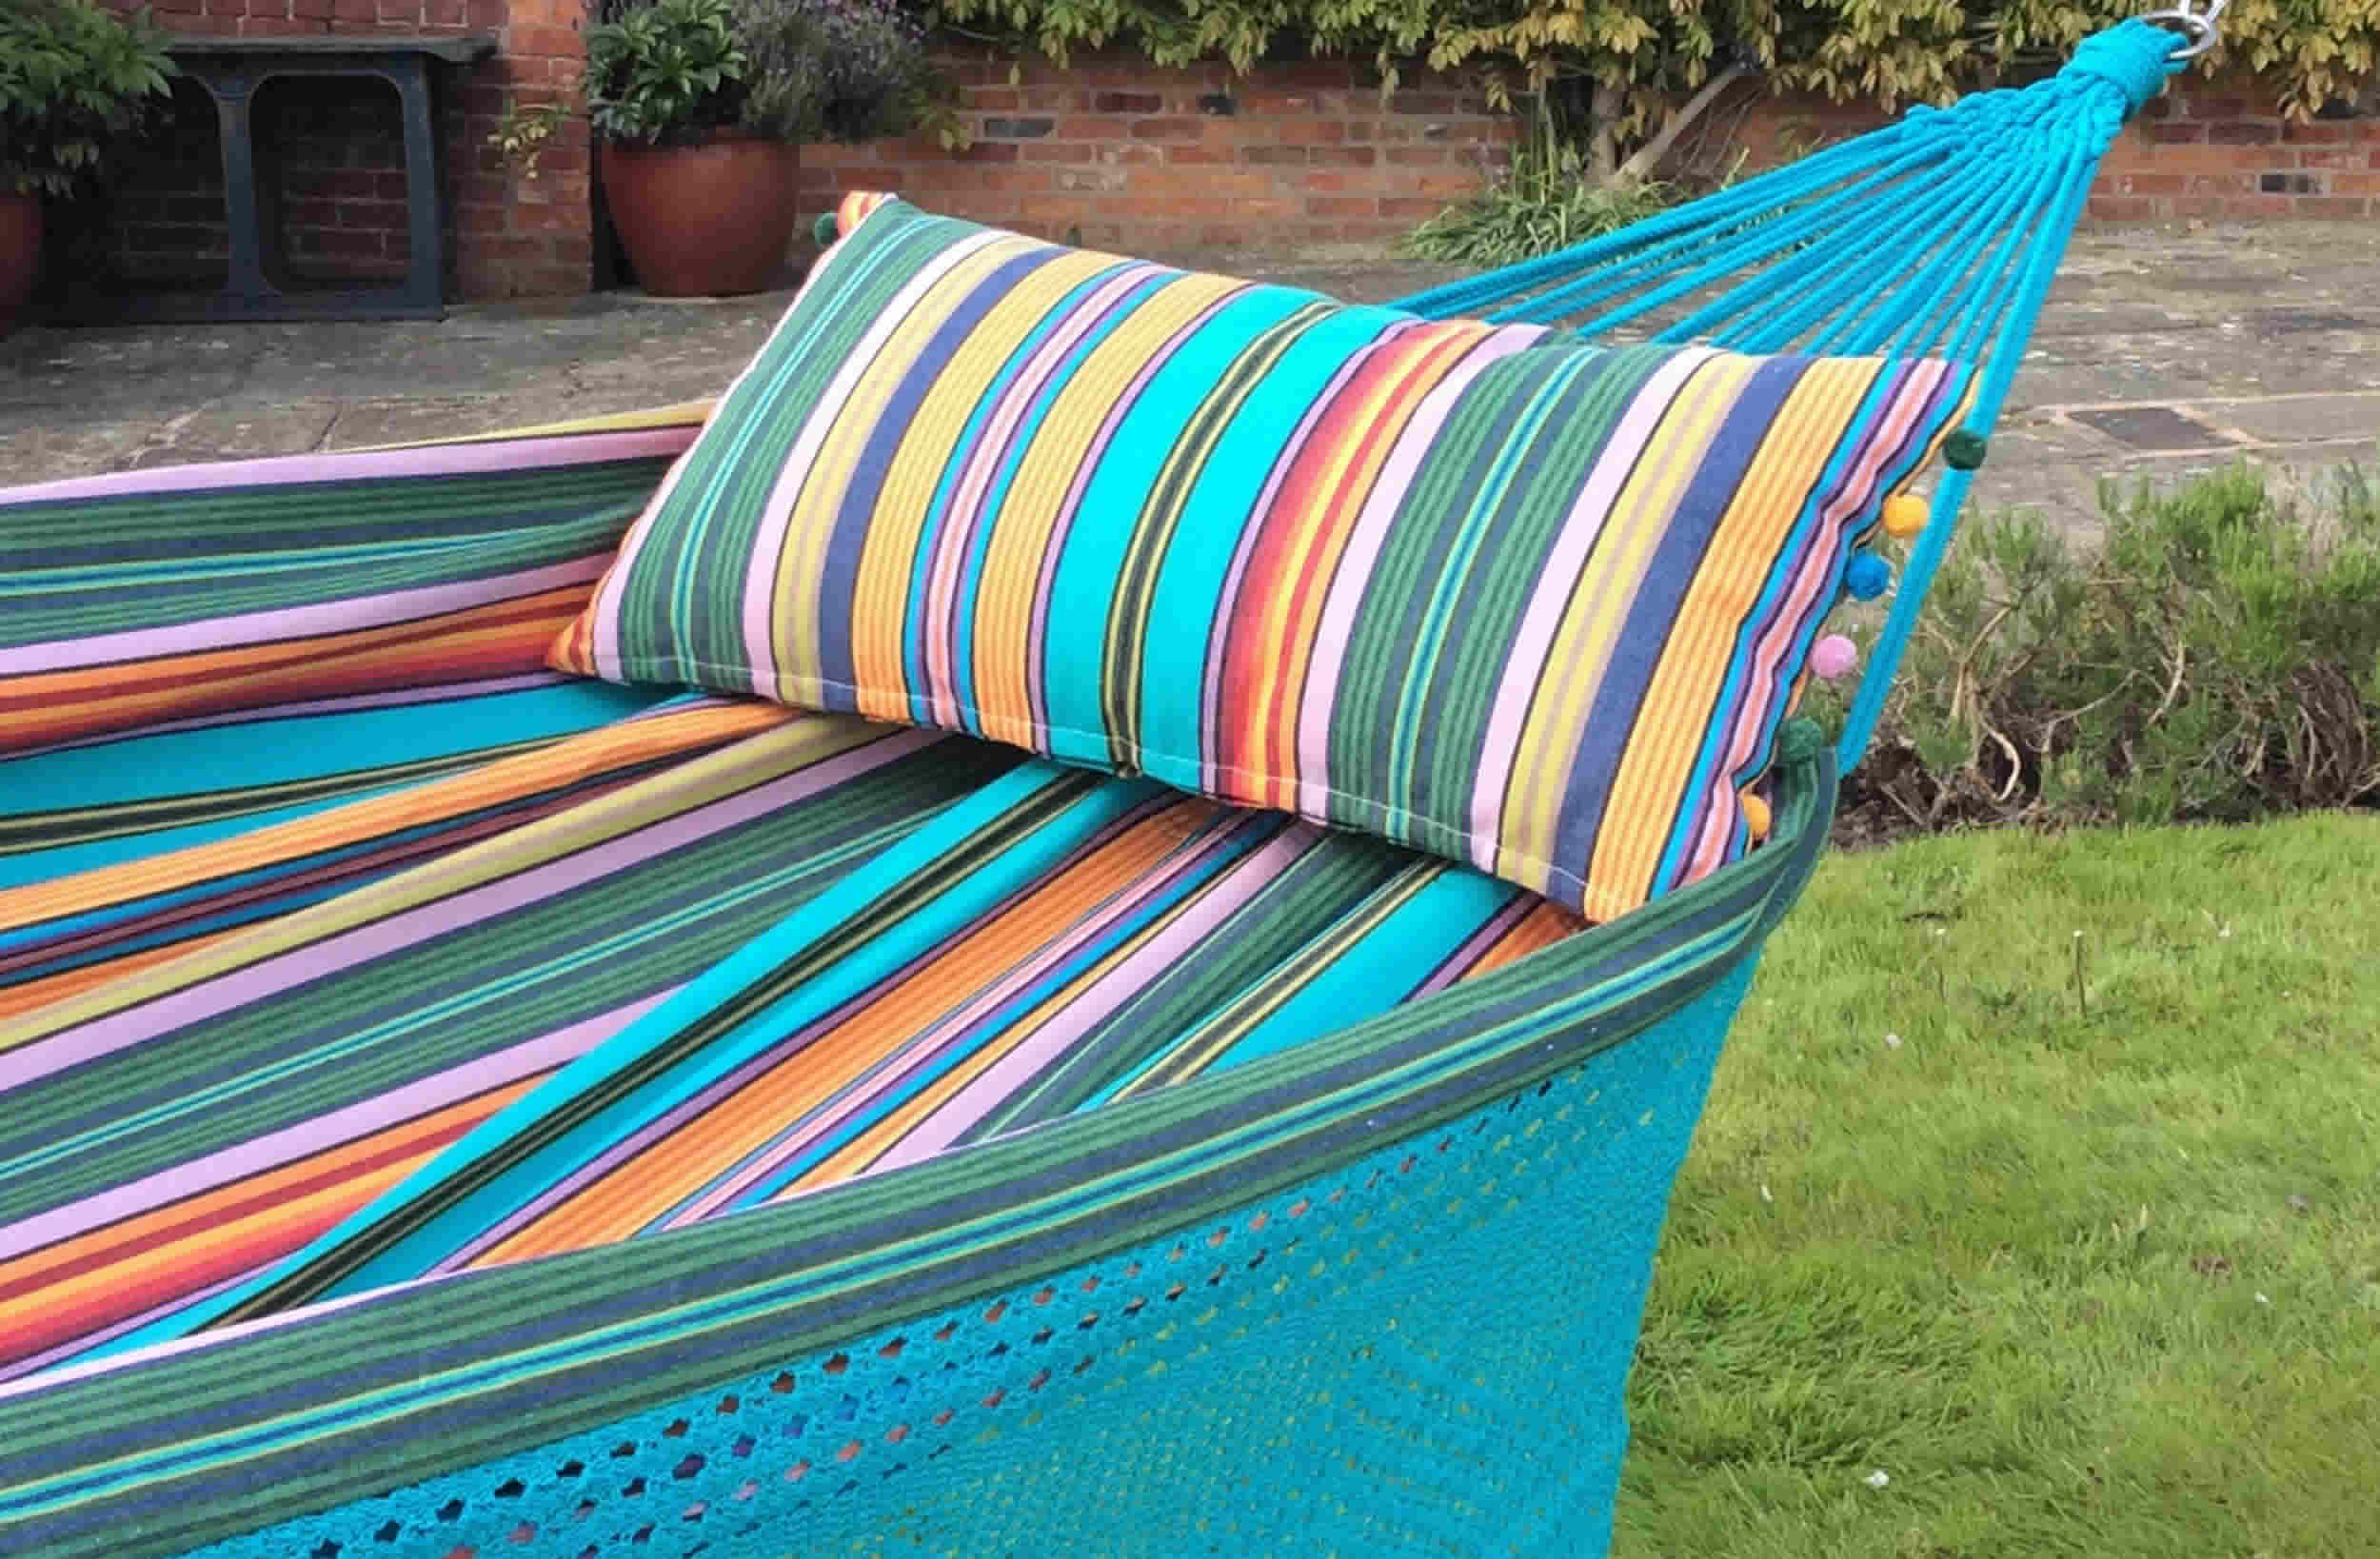 Turquoise Fringed Hammocks | Striped Hammocks with Fringe Diving Stripes